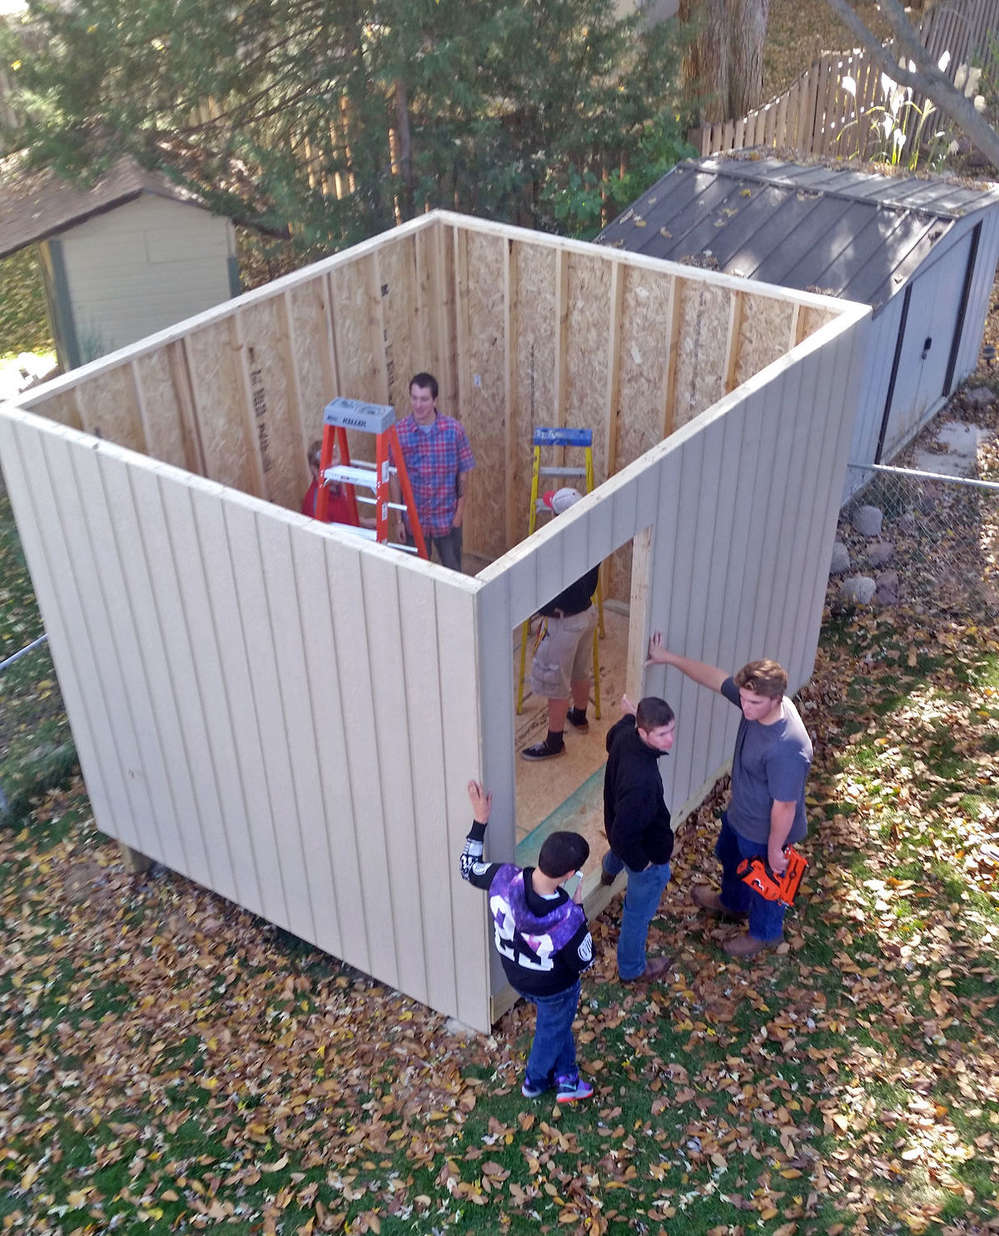 Students in the Ralston High School advanced woods and construction class put up the walls of the shed they built and gave to football coach Jason Fink on Nov. 3. The students built the shed in class in just under two months.